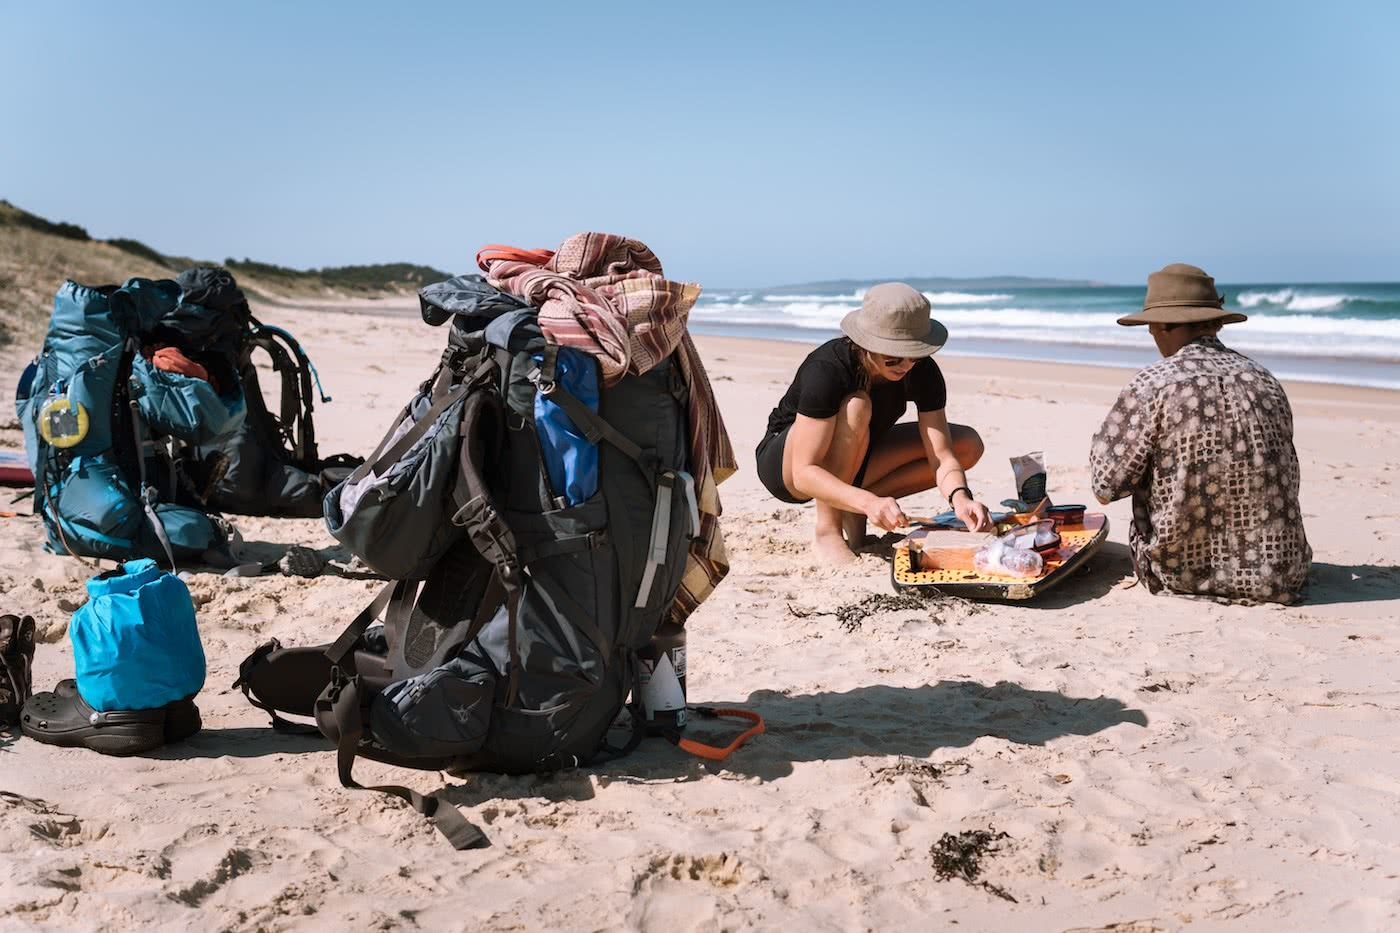 A Wilderness Surfari In Remote East Gippsland (VIC/NSW) by Jake, Sam and Georgia Doherty Osprey Adventure Grant, surf boards, beach, backpacks, picnic lunch